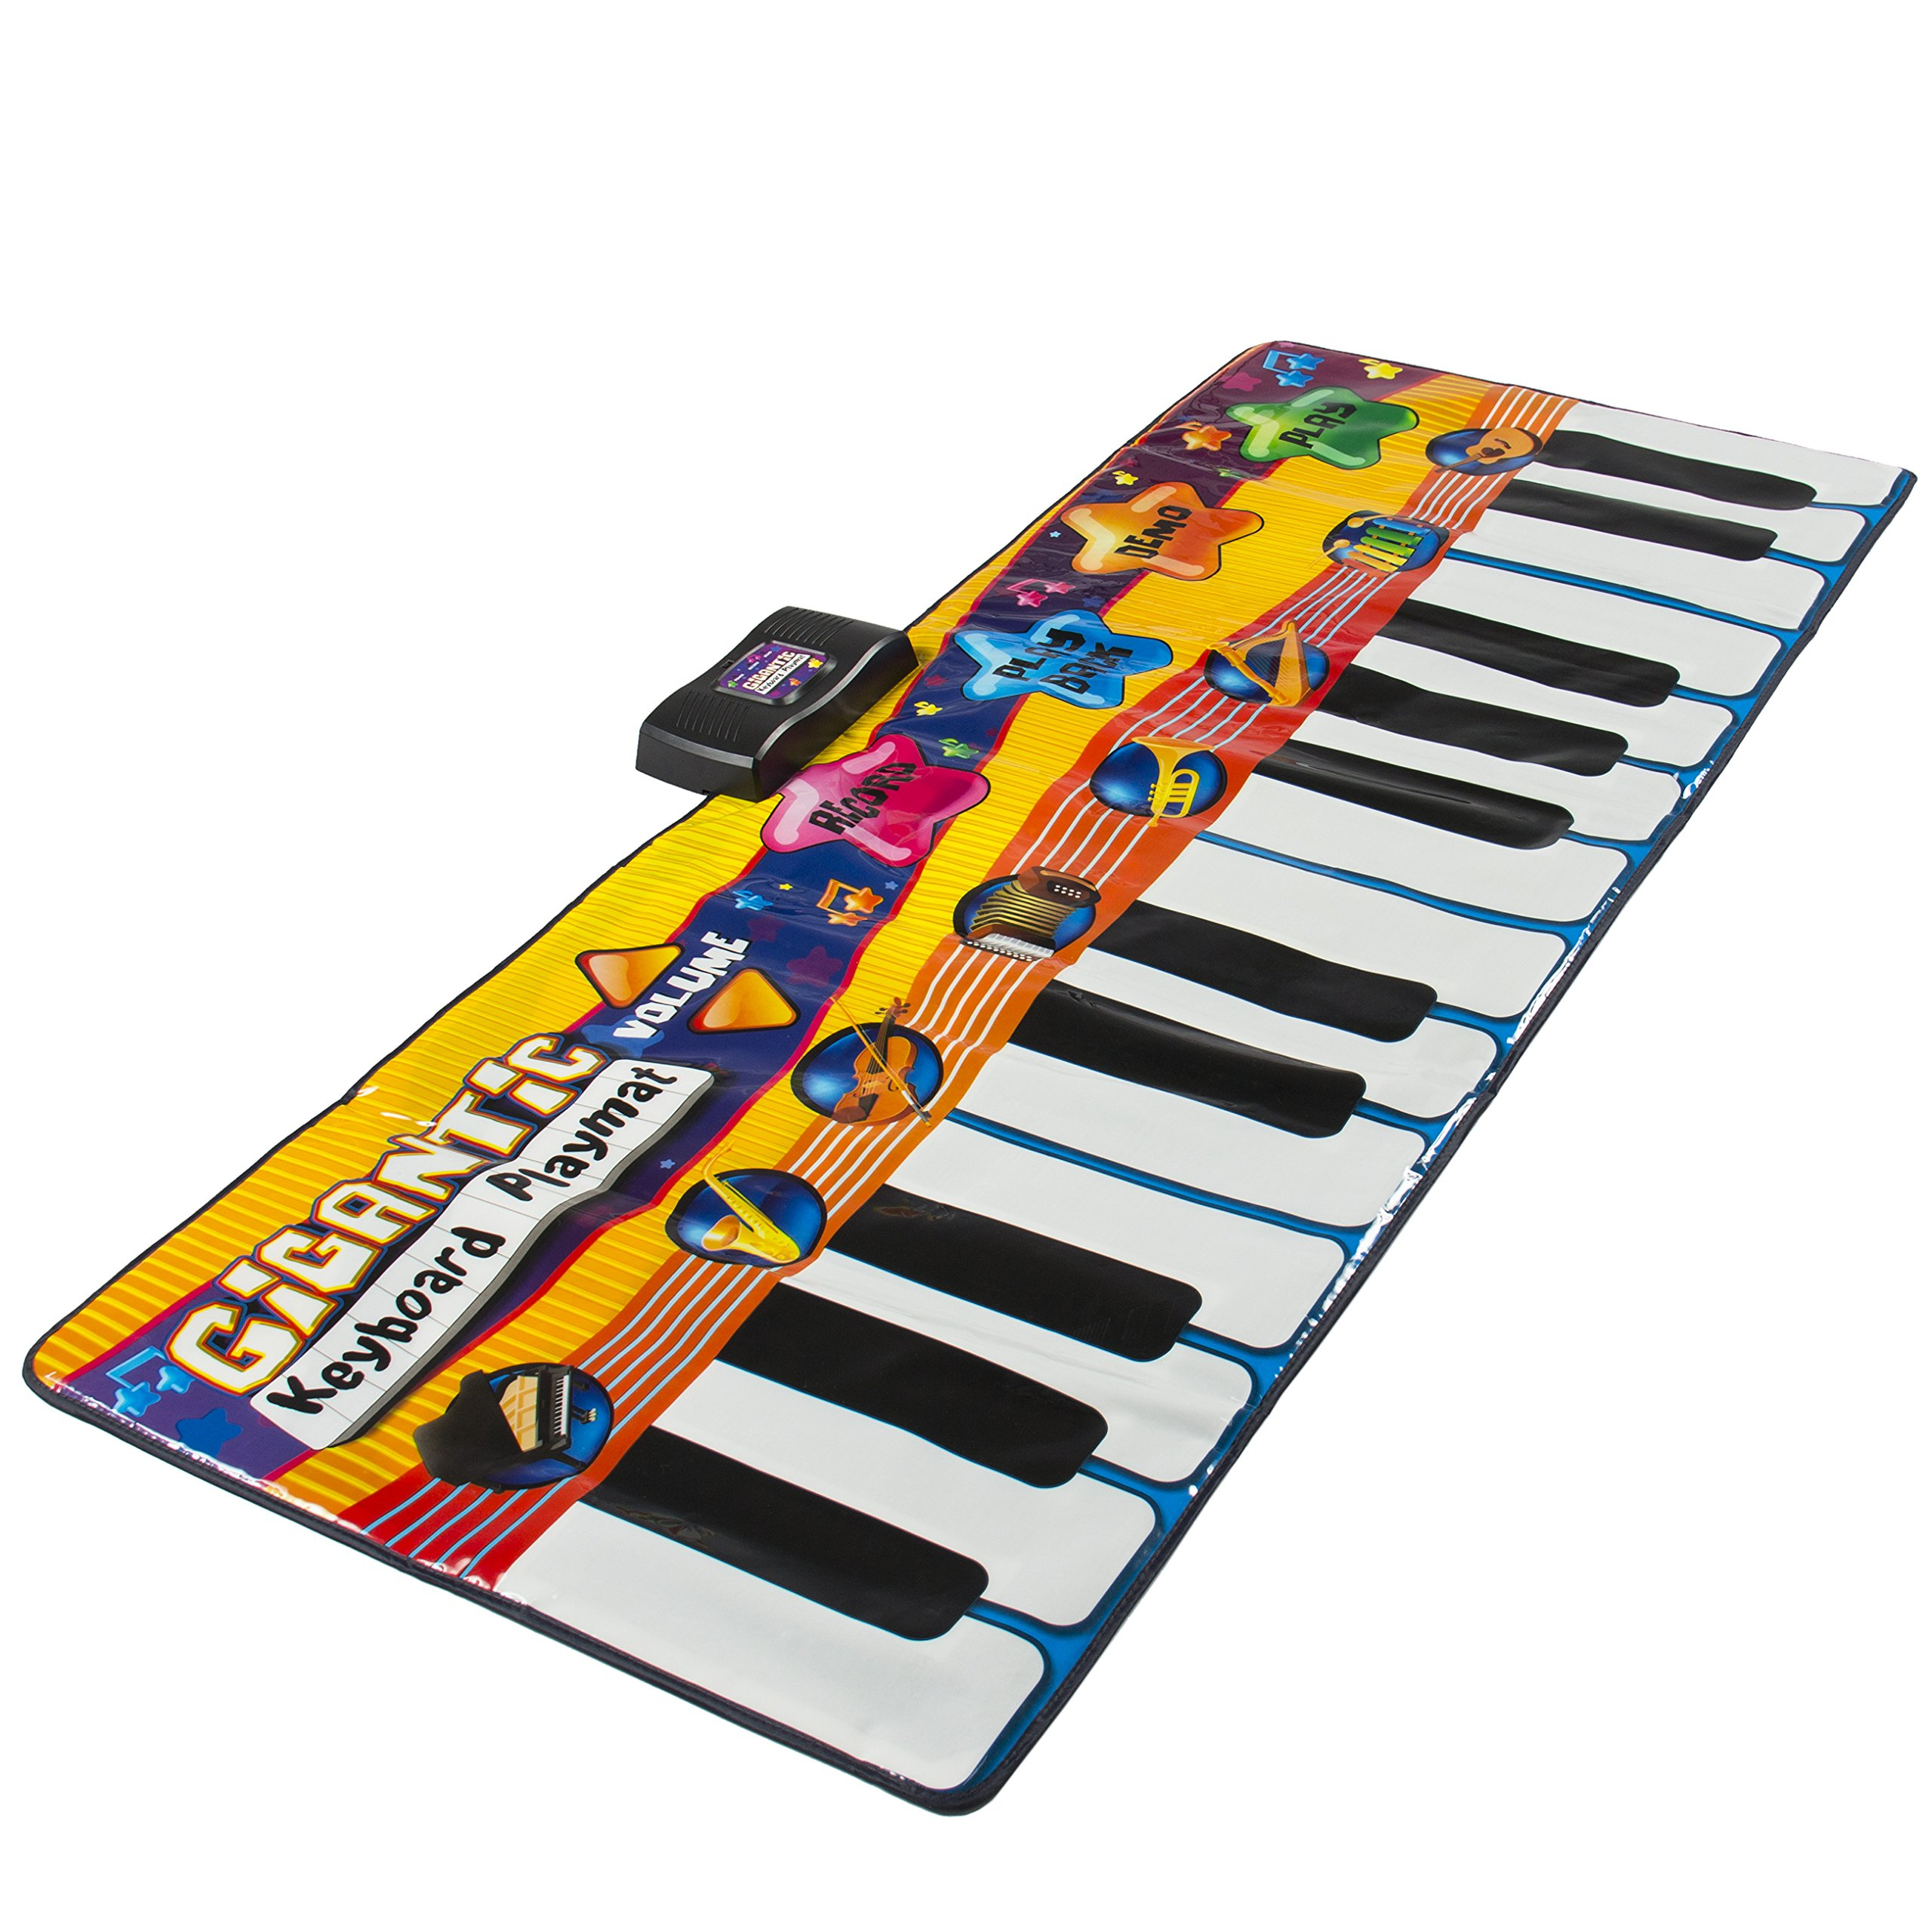 Best Choice Products Kids Big Keyboard Piano Fun Dance Playmat with 8 Instruments & 4 Play Modes, Multicolor by Best Choice Products (Image #3)